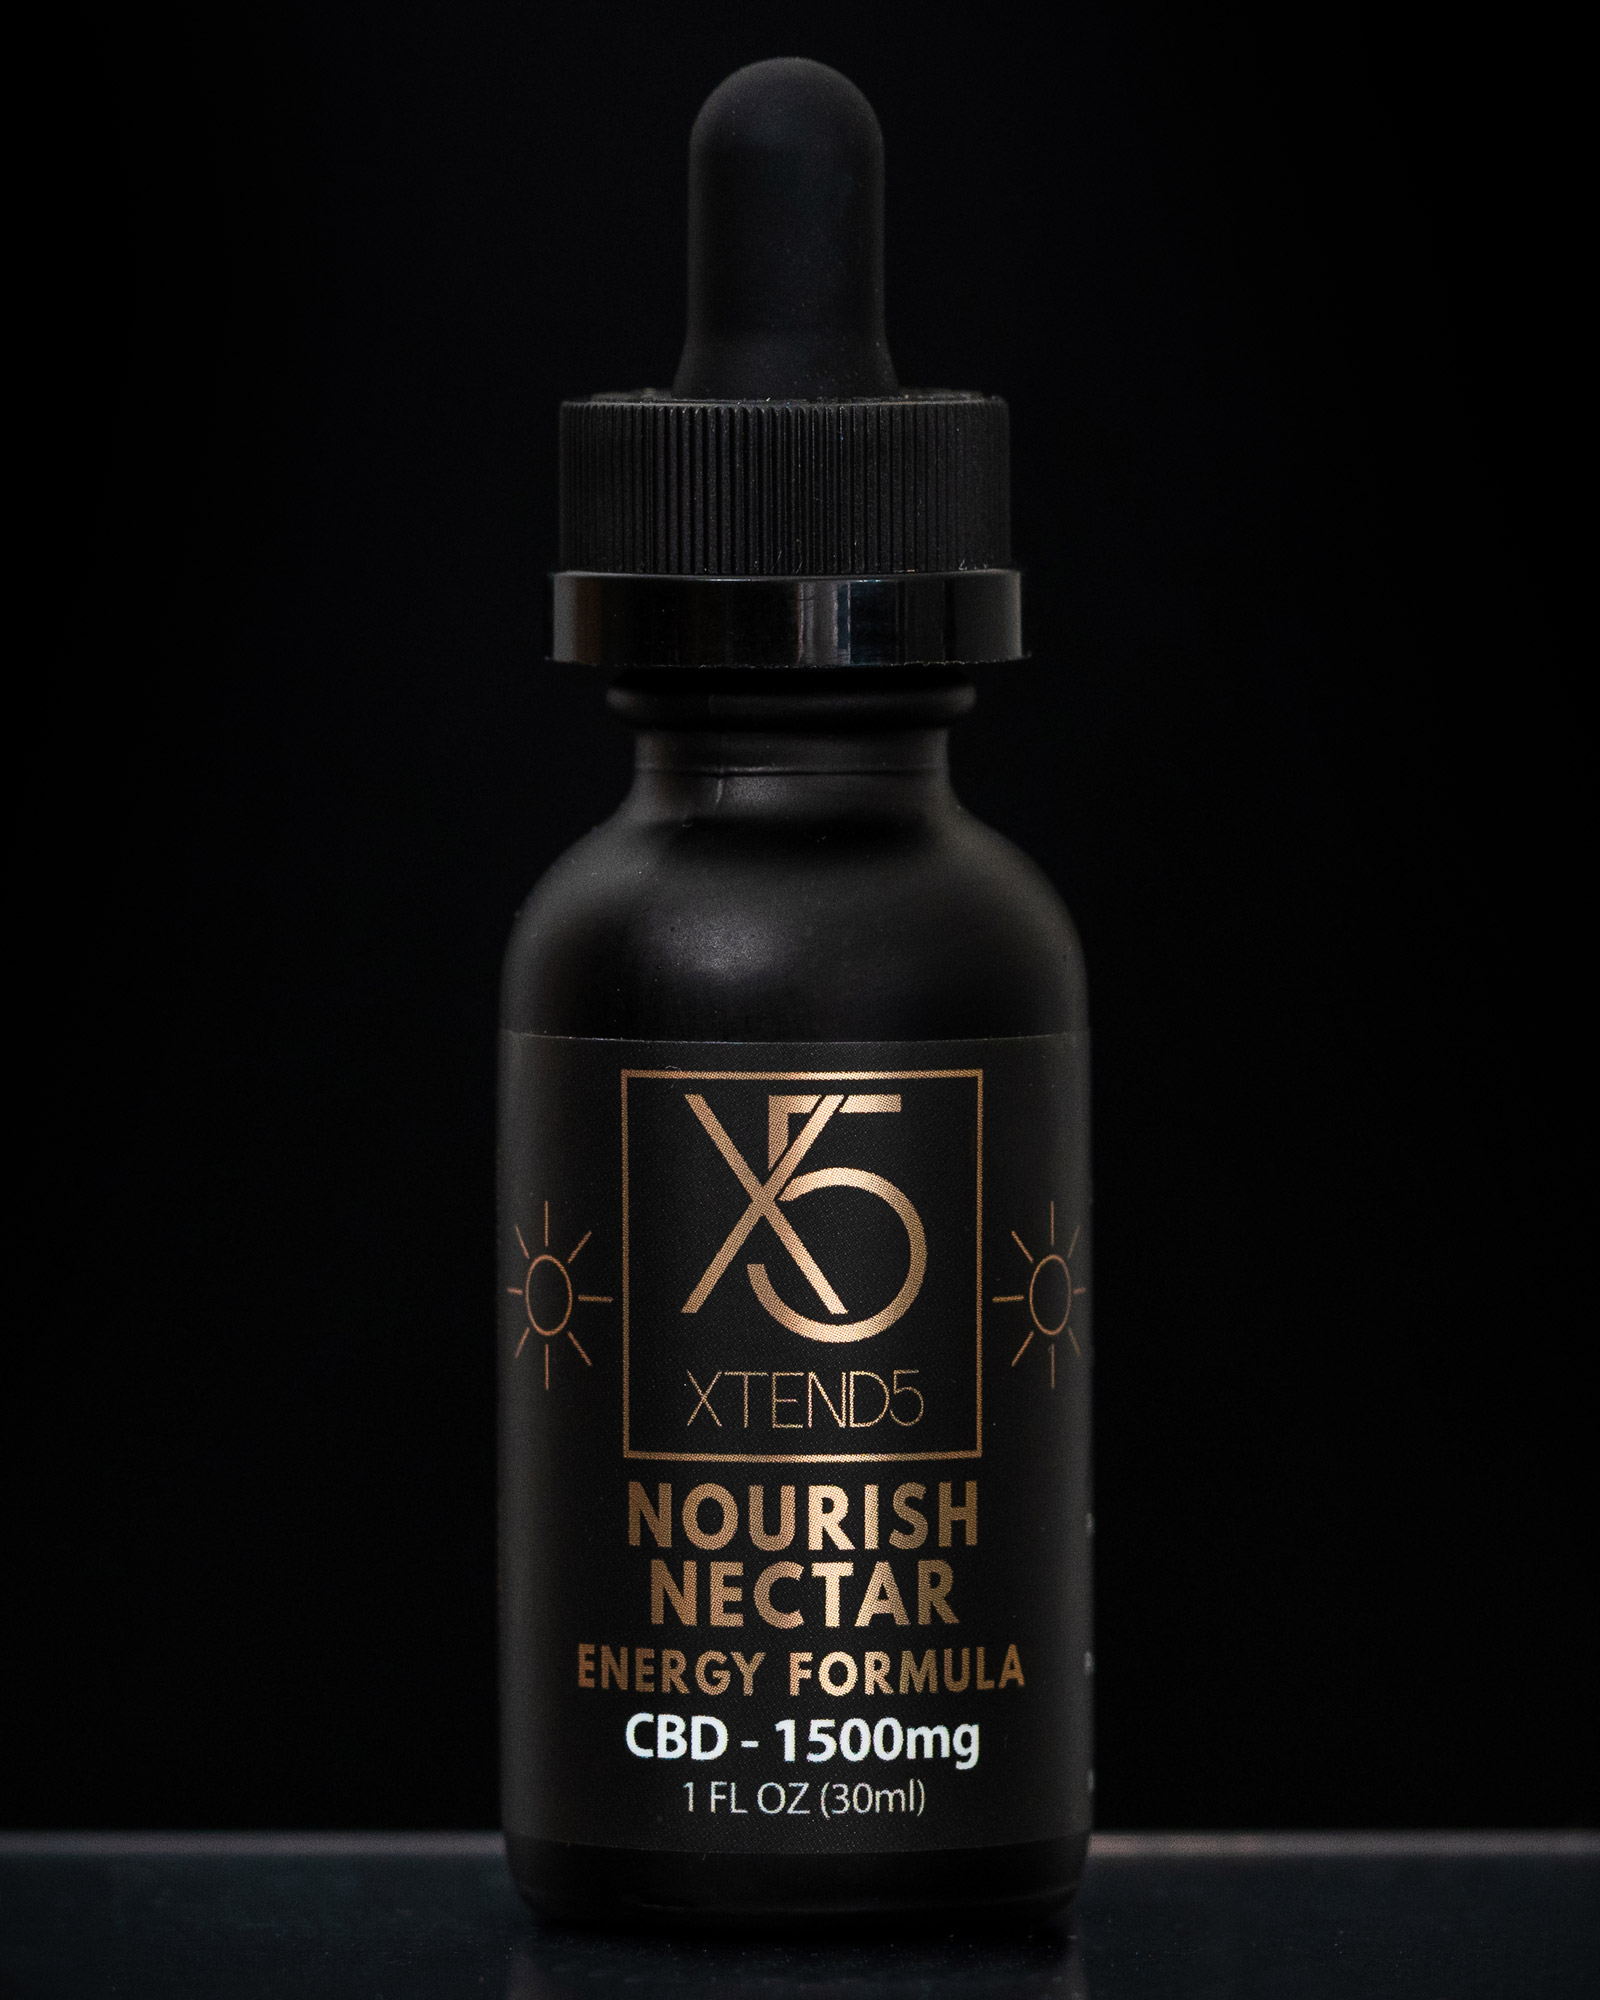 xtend5 nourish nectar 1500mg - 1500mg CBD+ Morning Blend Oil